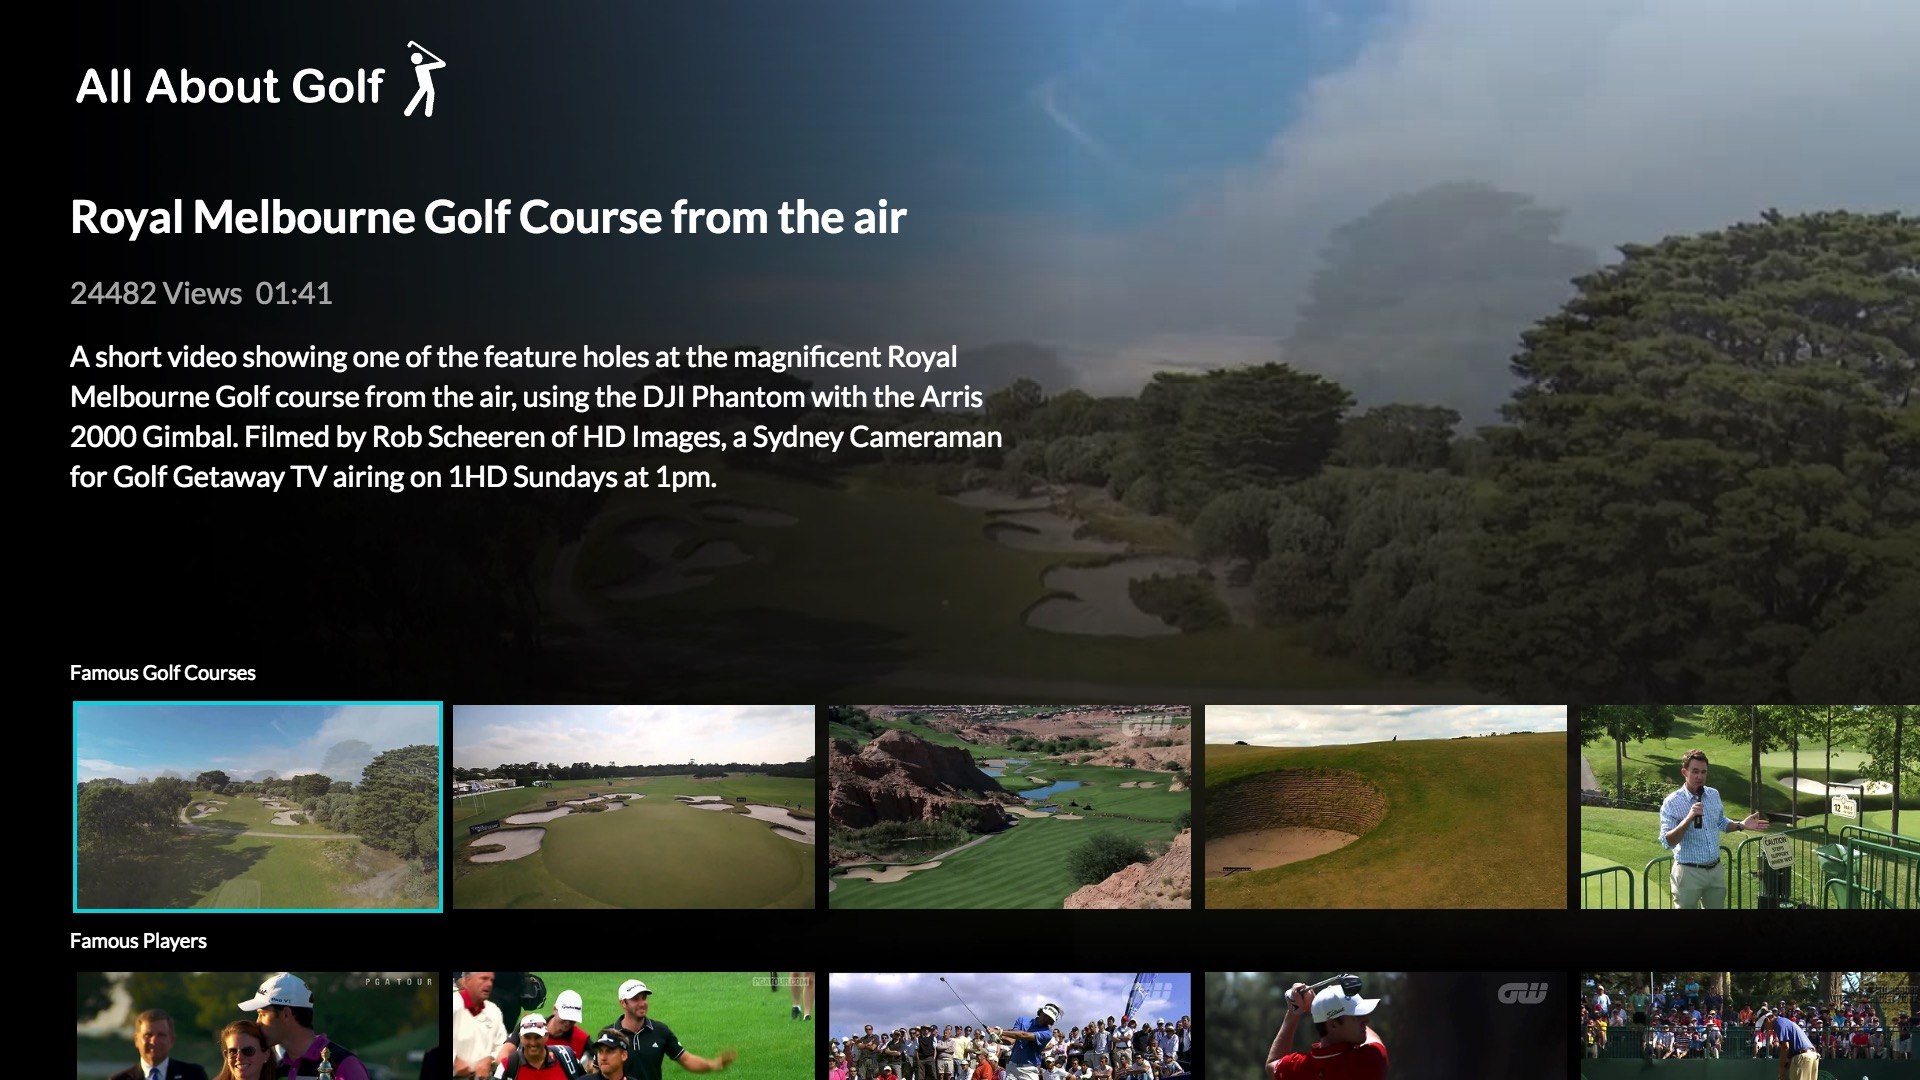 All About Golf Screenshot 002